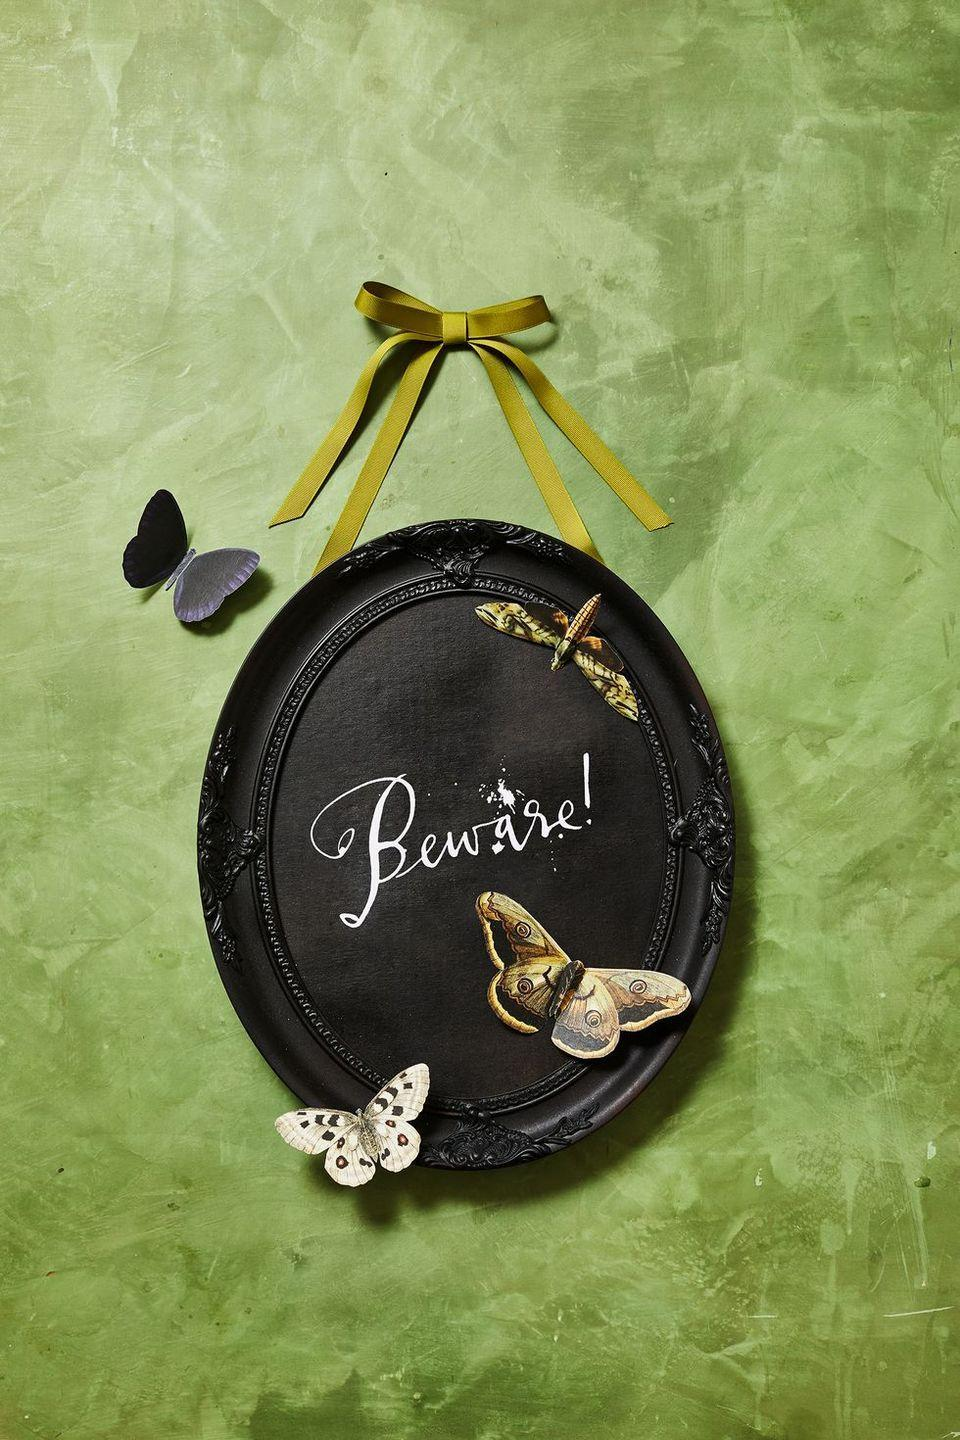 """<p>Cover a vintage frame in black spray paint, and once it's dry, cut out butterfly and Halloween-appropriate calligraphy art to dress it up. Hang your frame with any ribbon of your choice.<br></p><p><a class=""""link rapid-noclick-resp"""" href=""""https://www.goodhousekeeping.com/holidays/halloween-ideas/a33564450/gh-halloween-artwork-calligraphy-templates/"""" rel=""""nofollow noopener"""" target=""""_blank"""" data-ylk=""""slk:GET TEMPLATES"""">GET TEMPLATES</a></p>"""